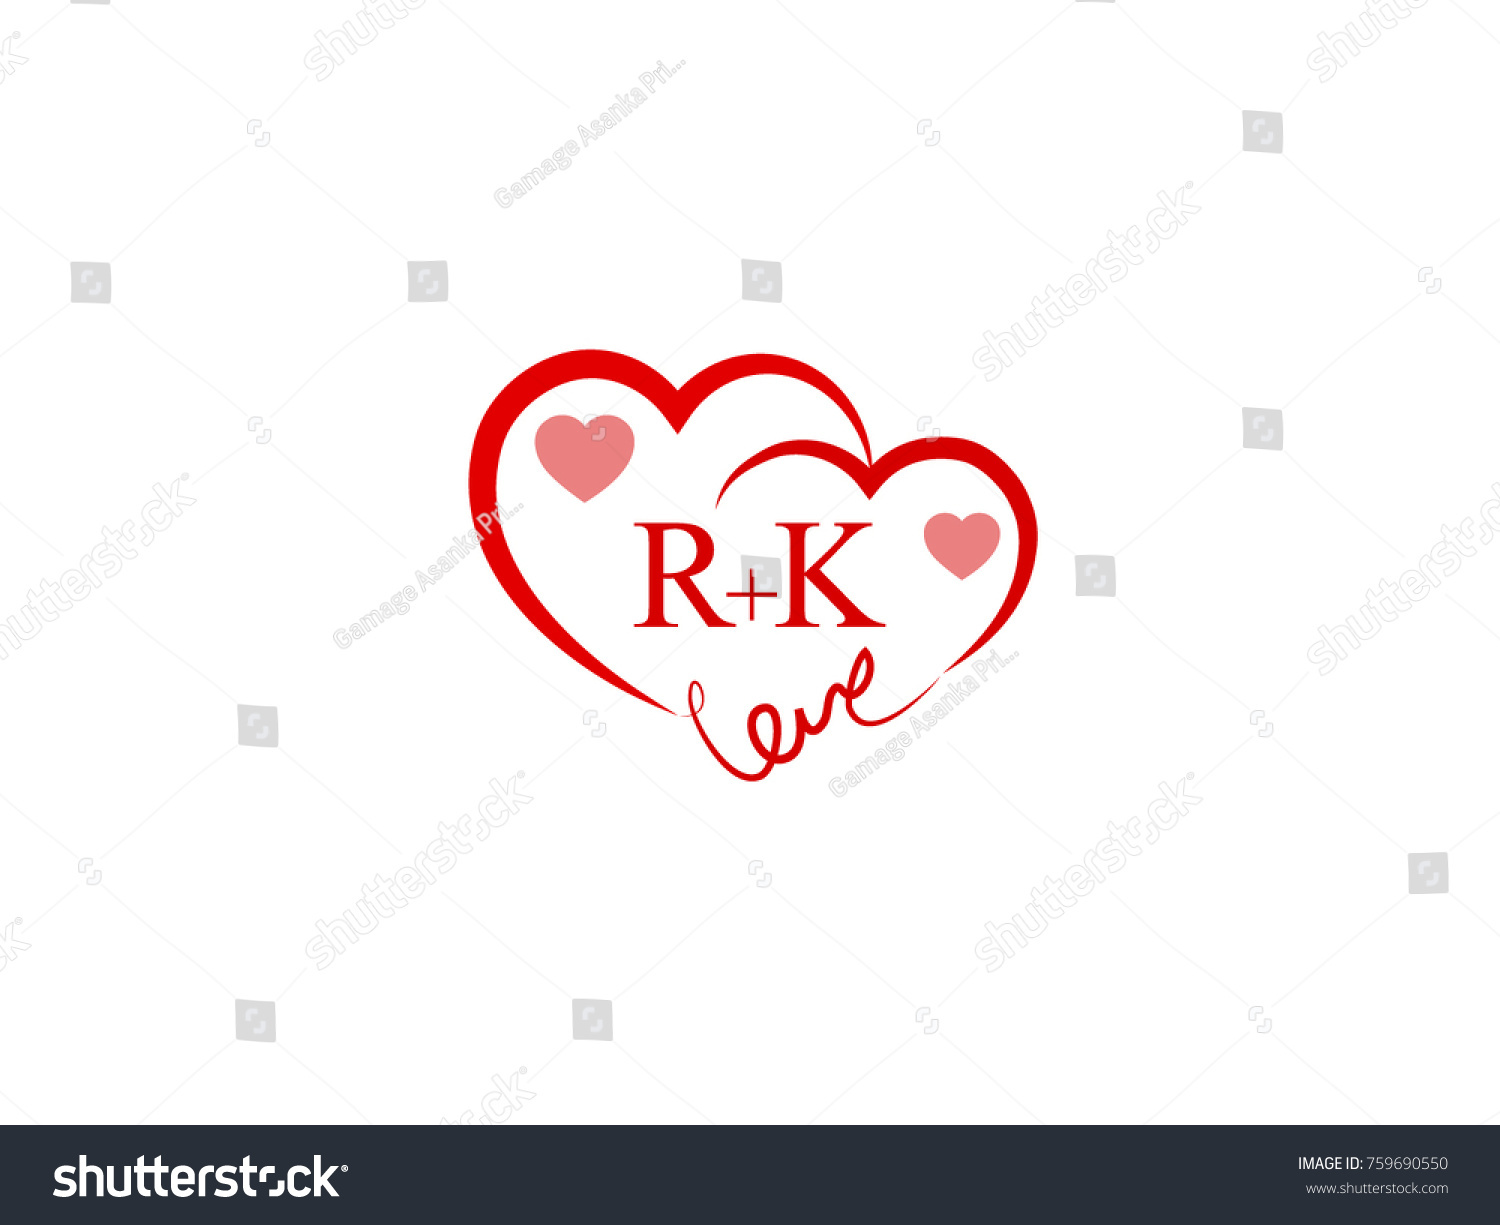 Heart R Love K Wallpaper